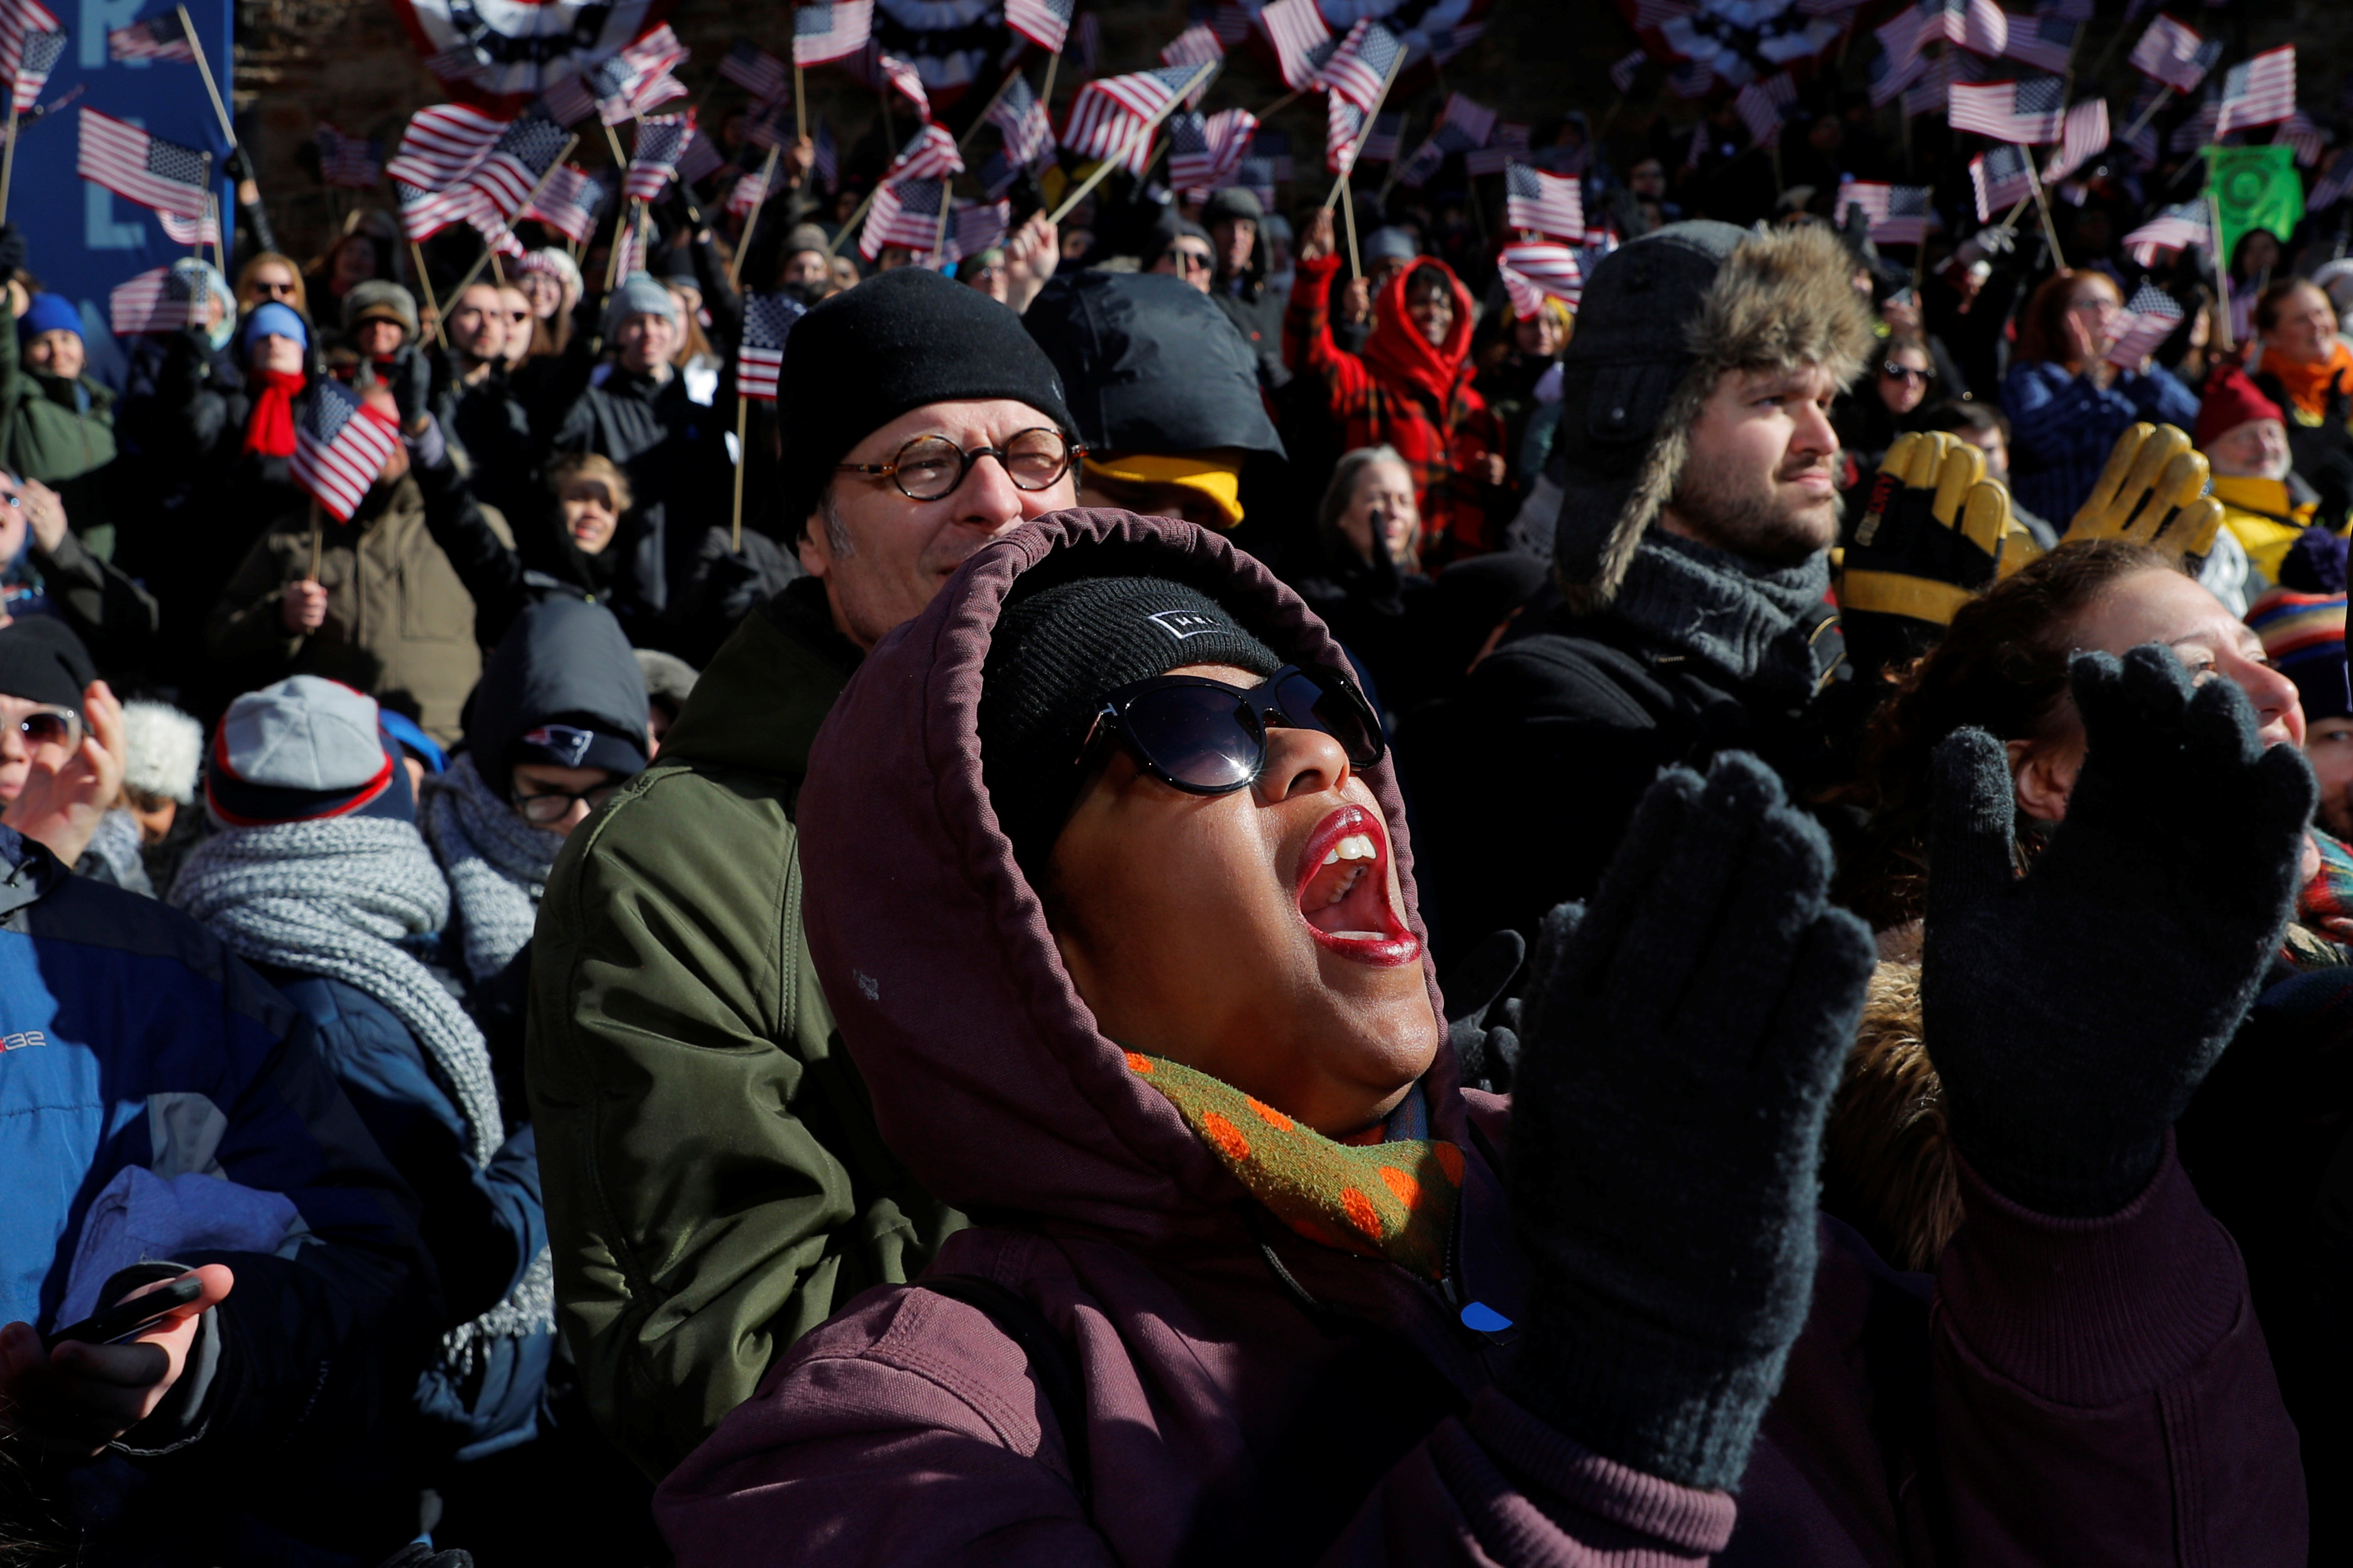 Supporters cheer as U.S. Senator Elizabeth Warren (D-MA) speaks at a rally to launch her campaign for the 2020 Democratic presidential nomination in Lawrence, Massachusetts, U.S., February 9, 2019. REUTERS/Brian Snyder